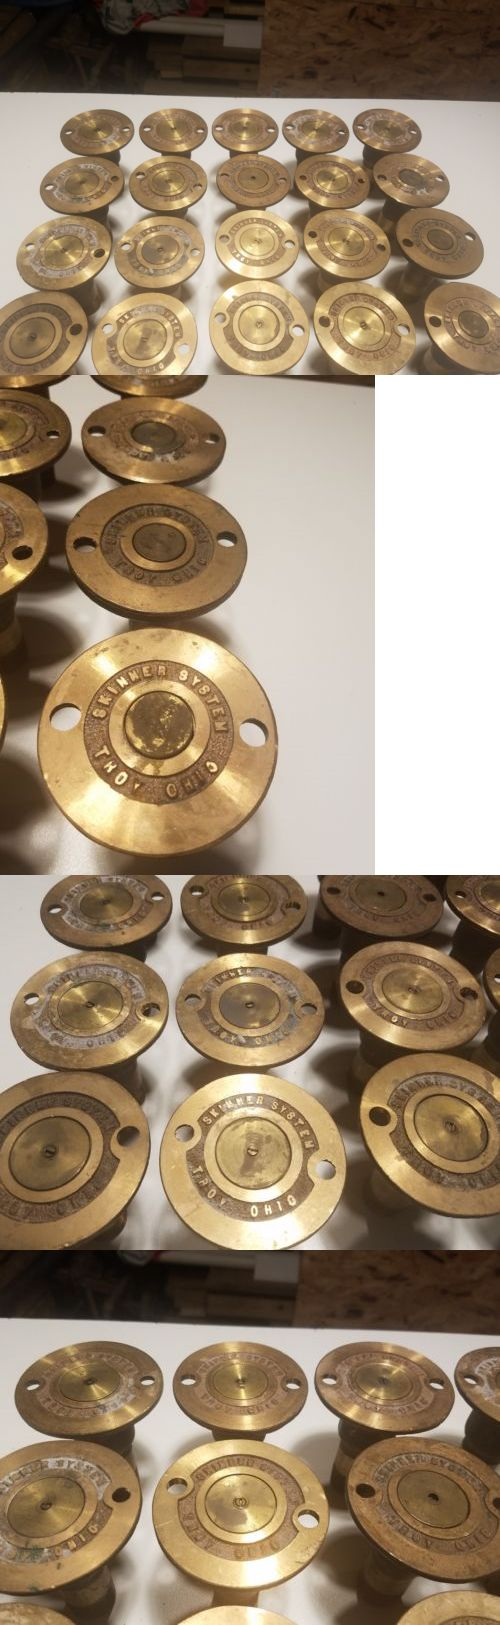 Lawn Sprinklers 20542: 20 Extremely Rare Skinner System Troy Ohio Brass Pop Up Sprinklers Never Used -> BUY IT NOW ONLY: $500 on eBay!